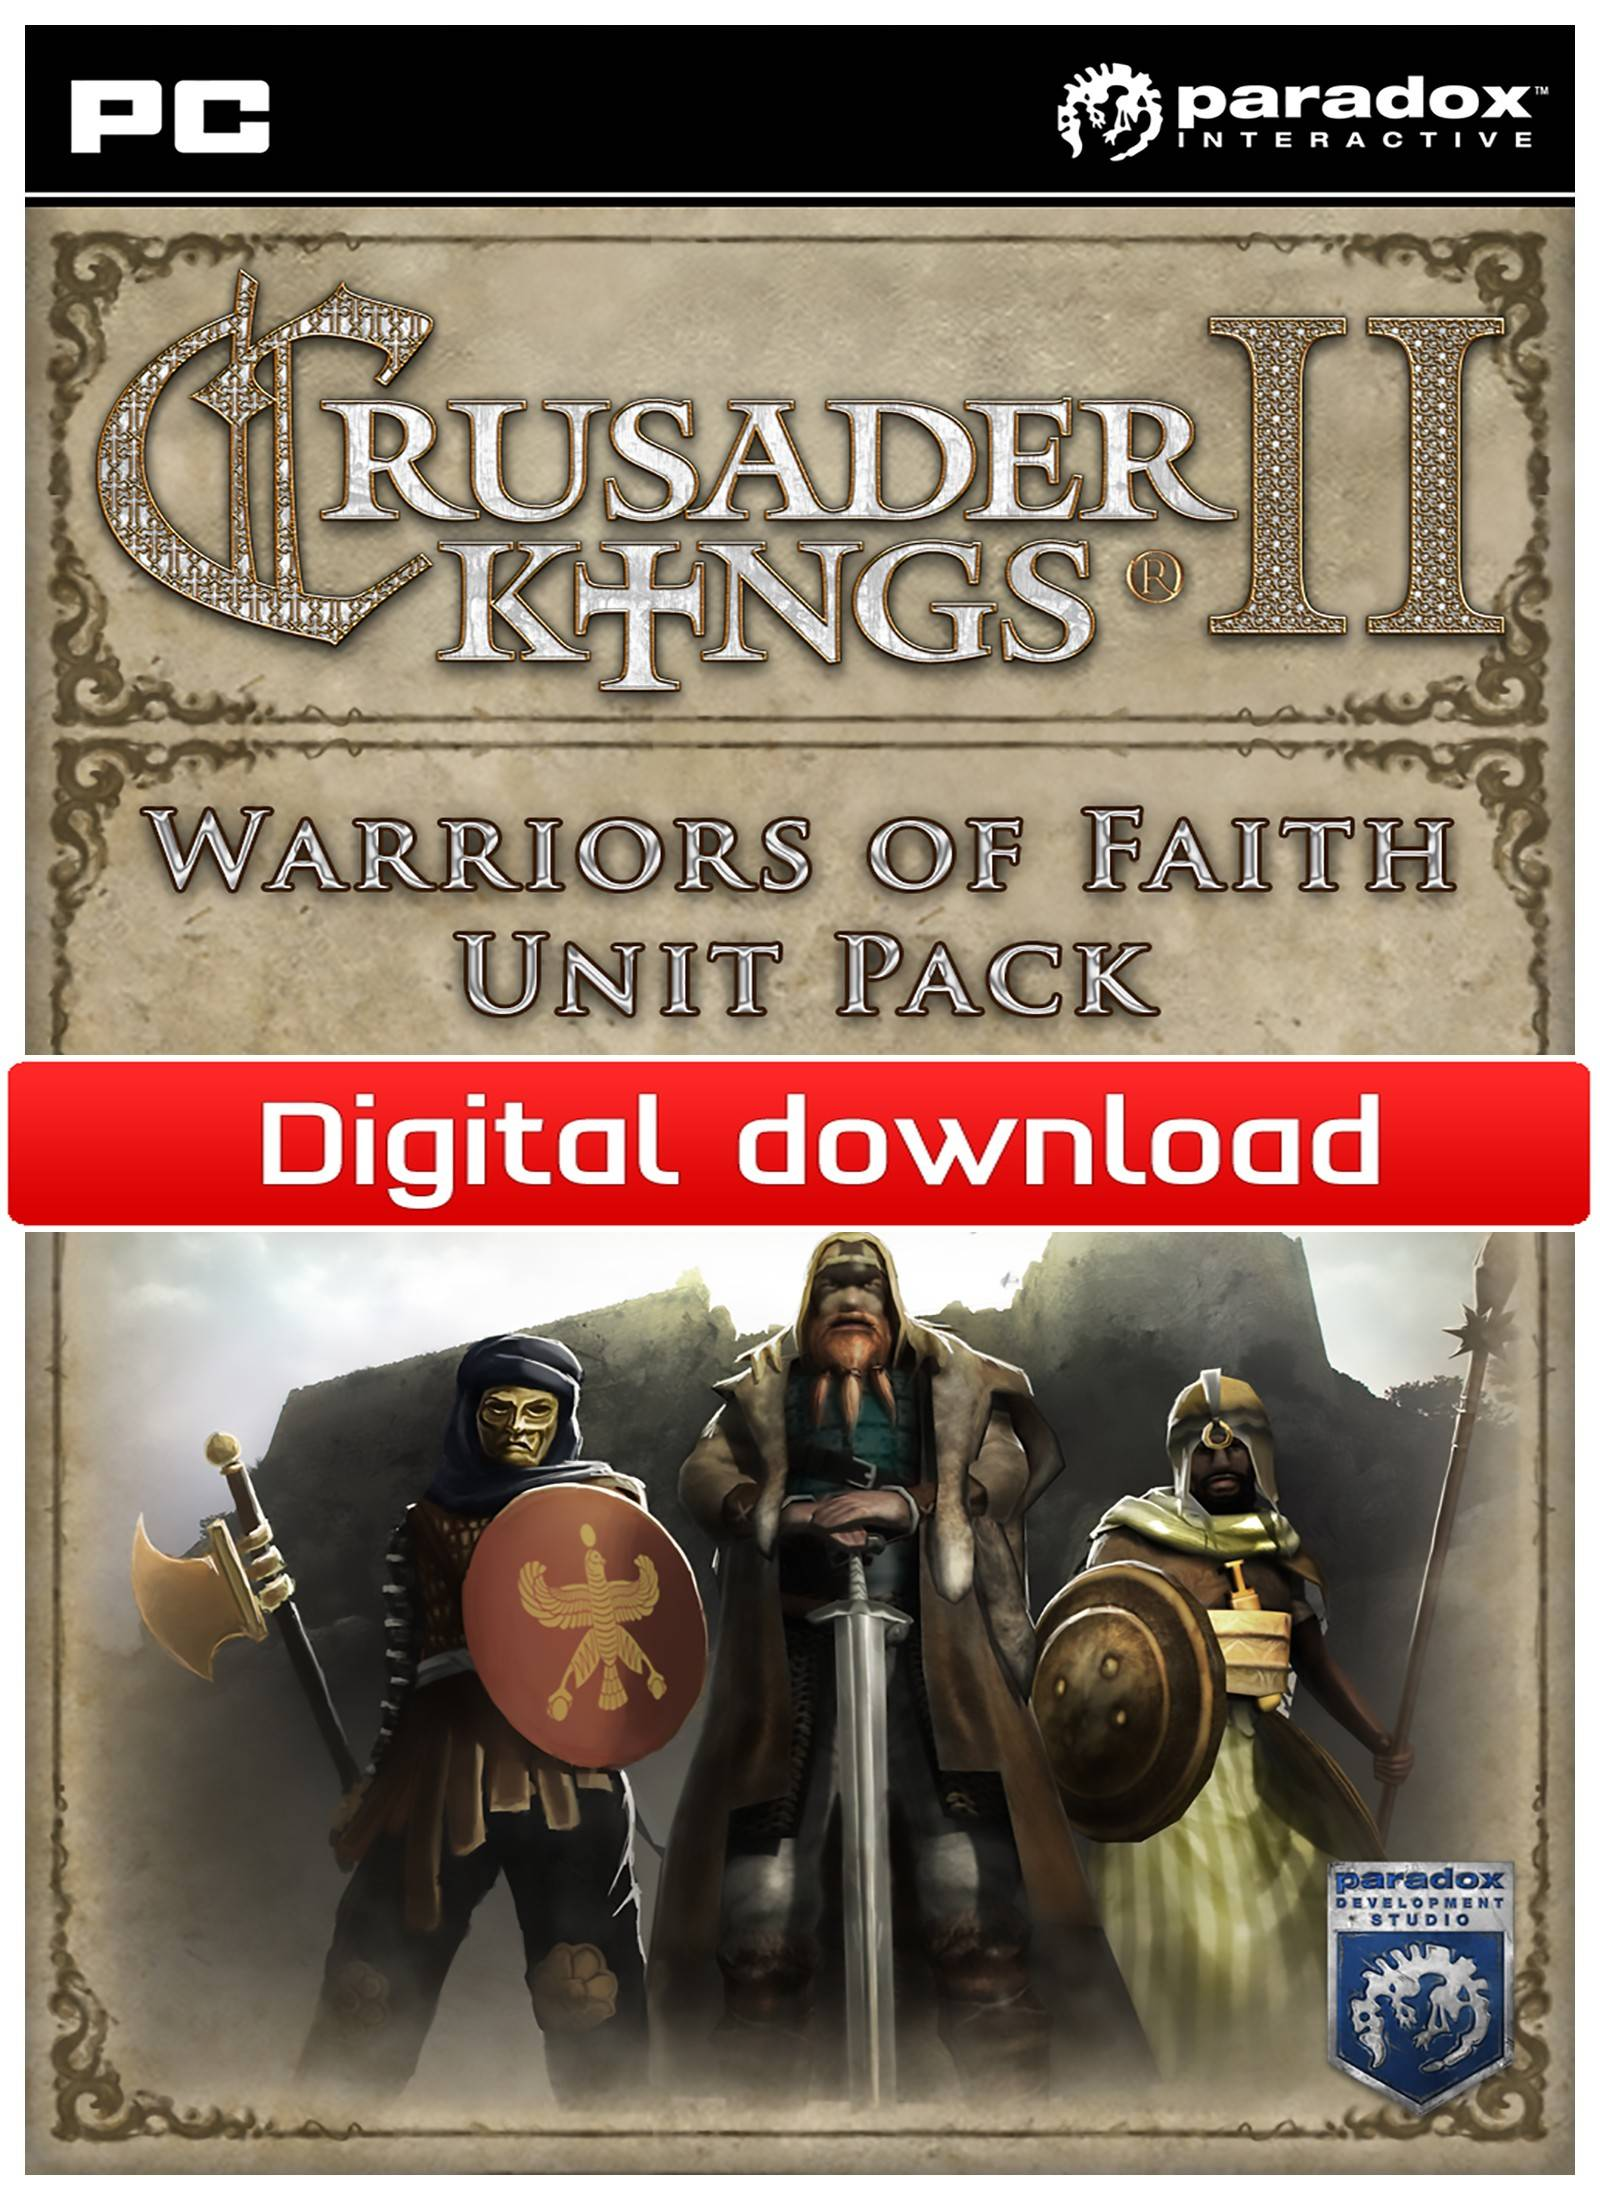 Paradox Crusader Kings II - Warriors of Faith Unit Pack (Downl)